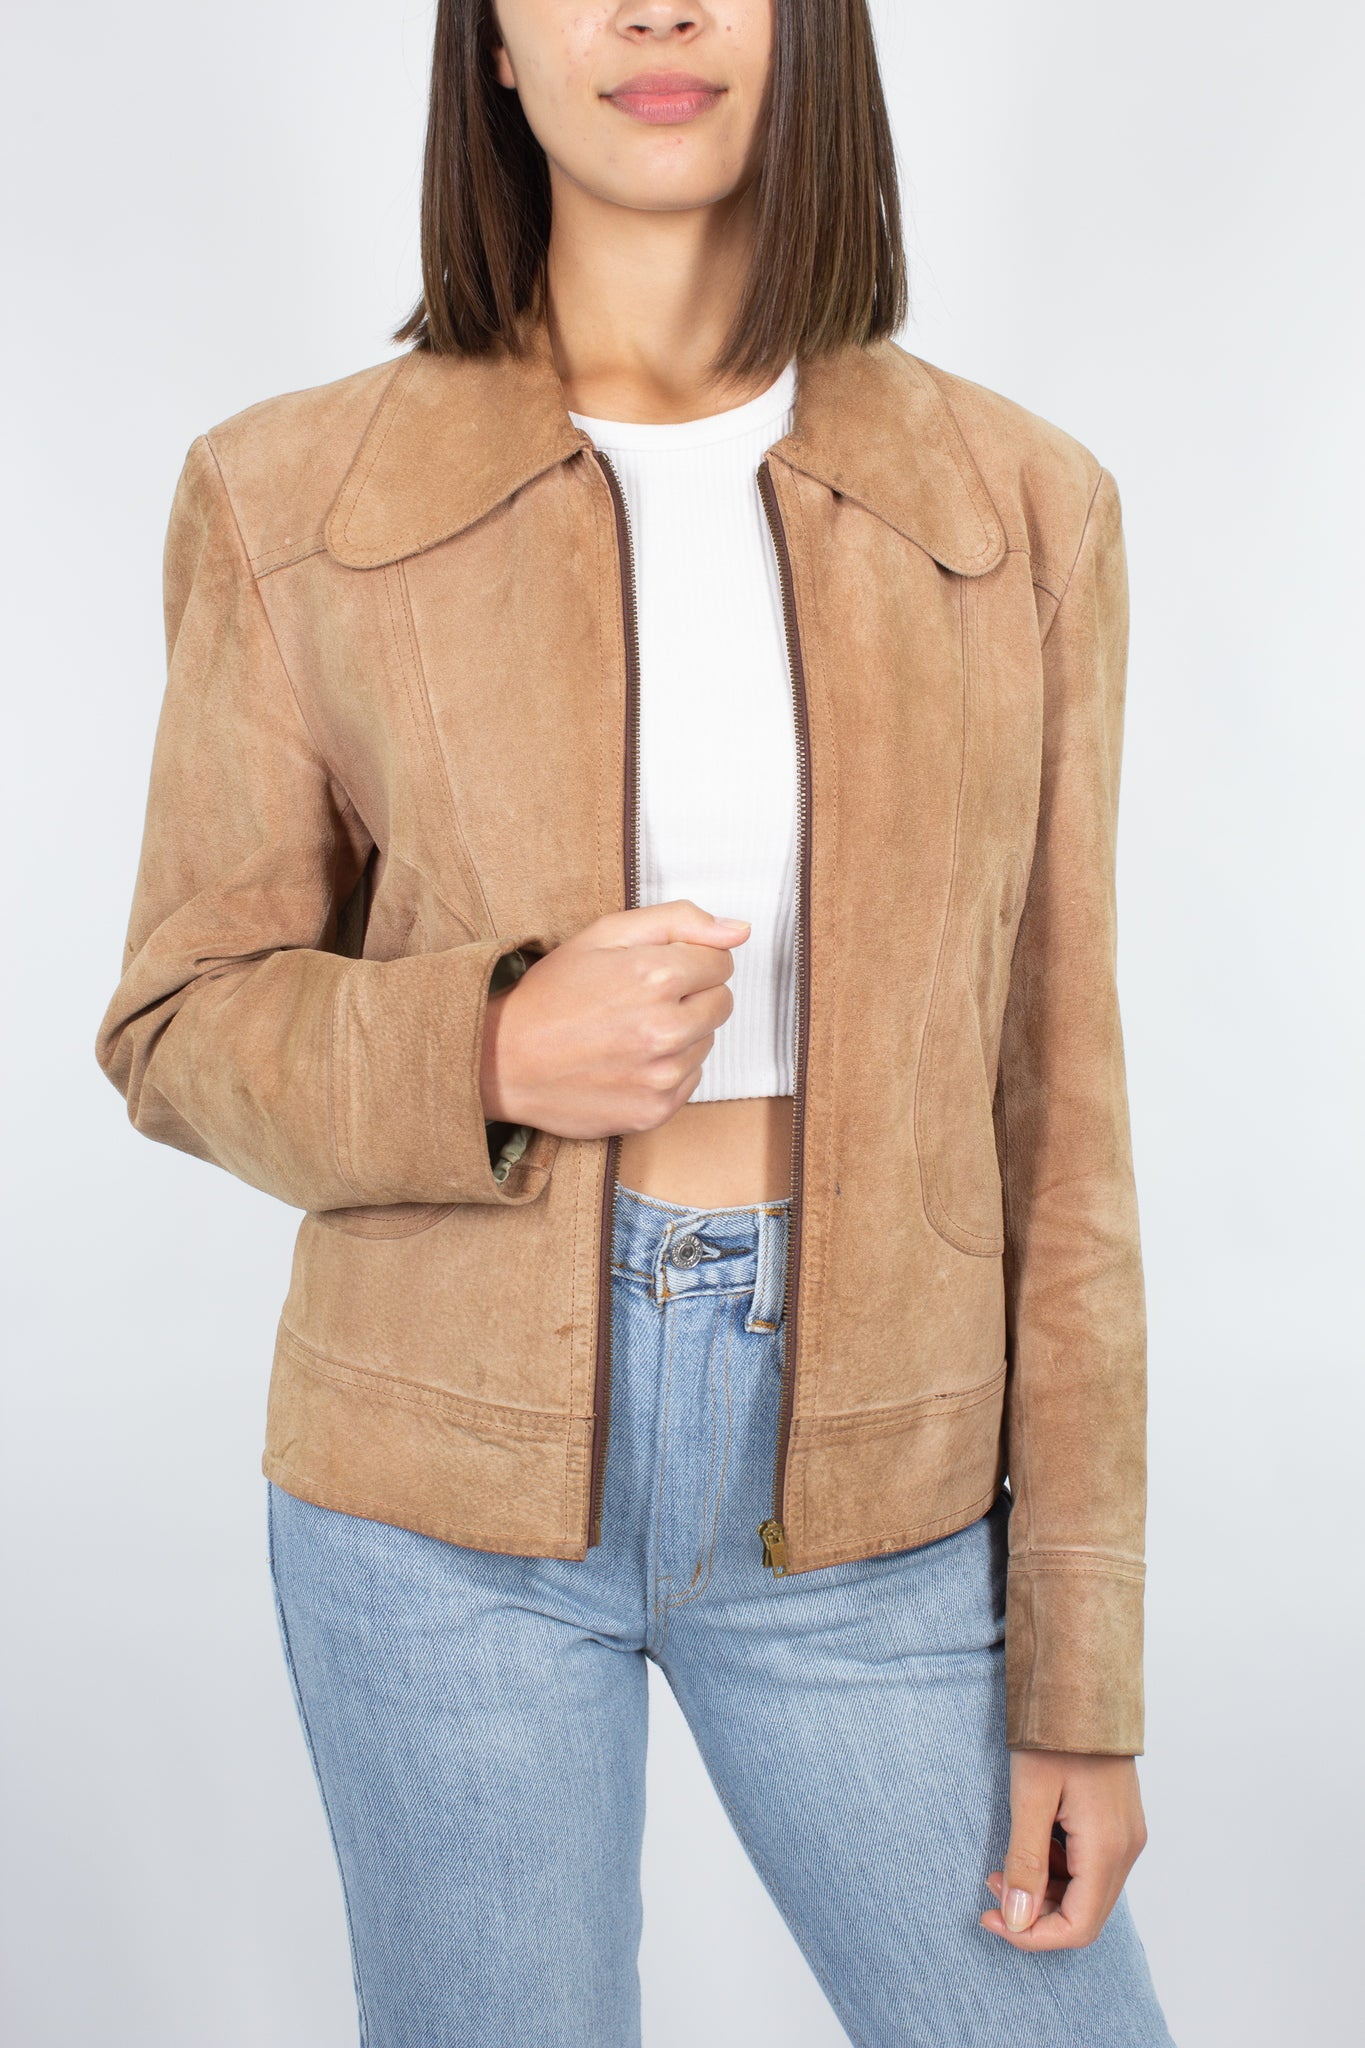 70s Tan Suede Leather Jacket - Size M/L